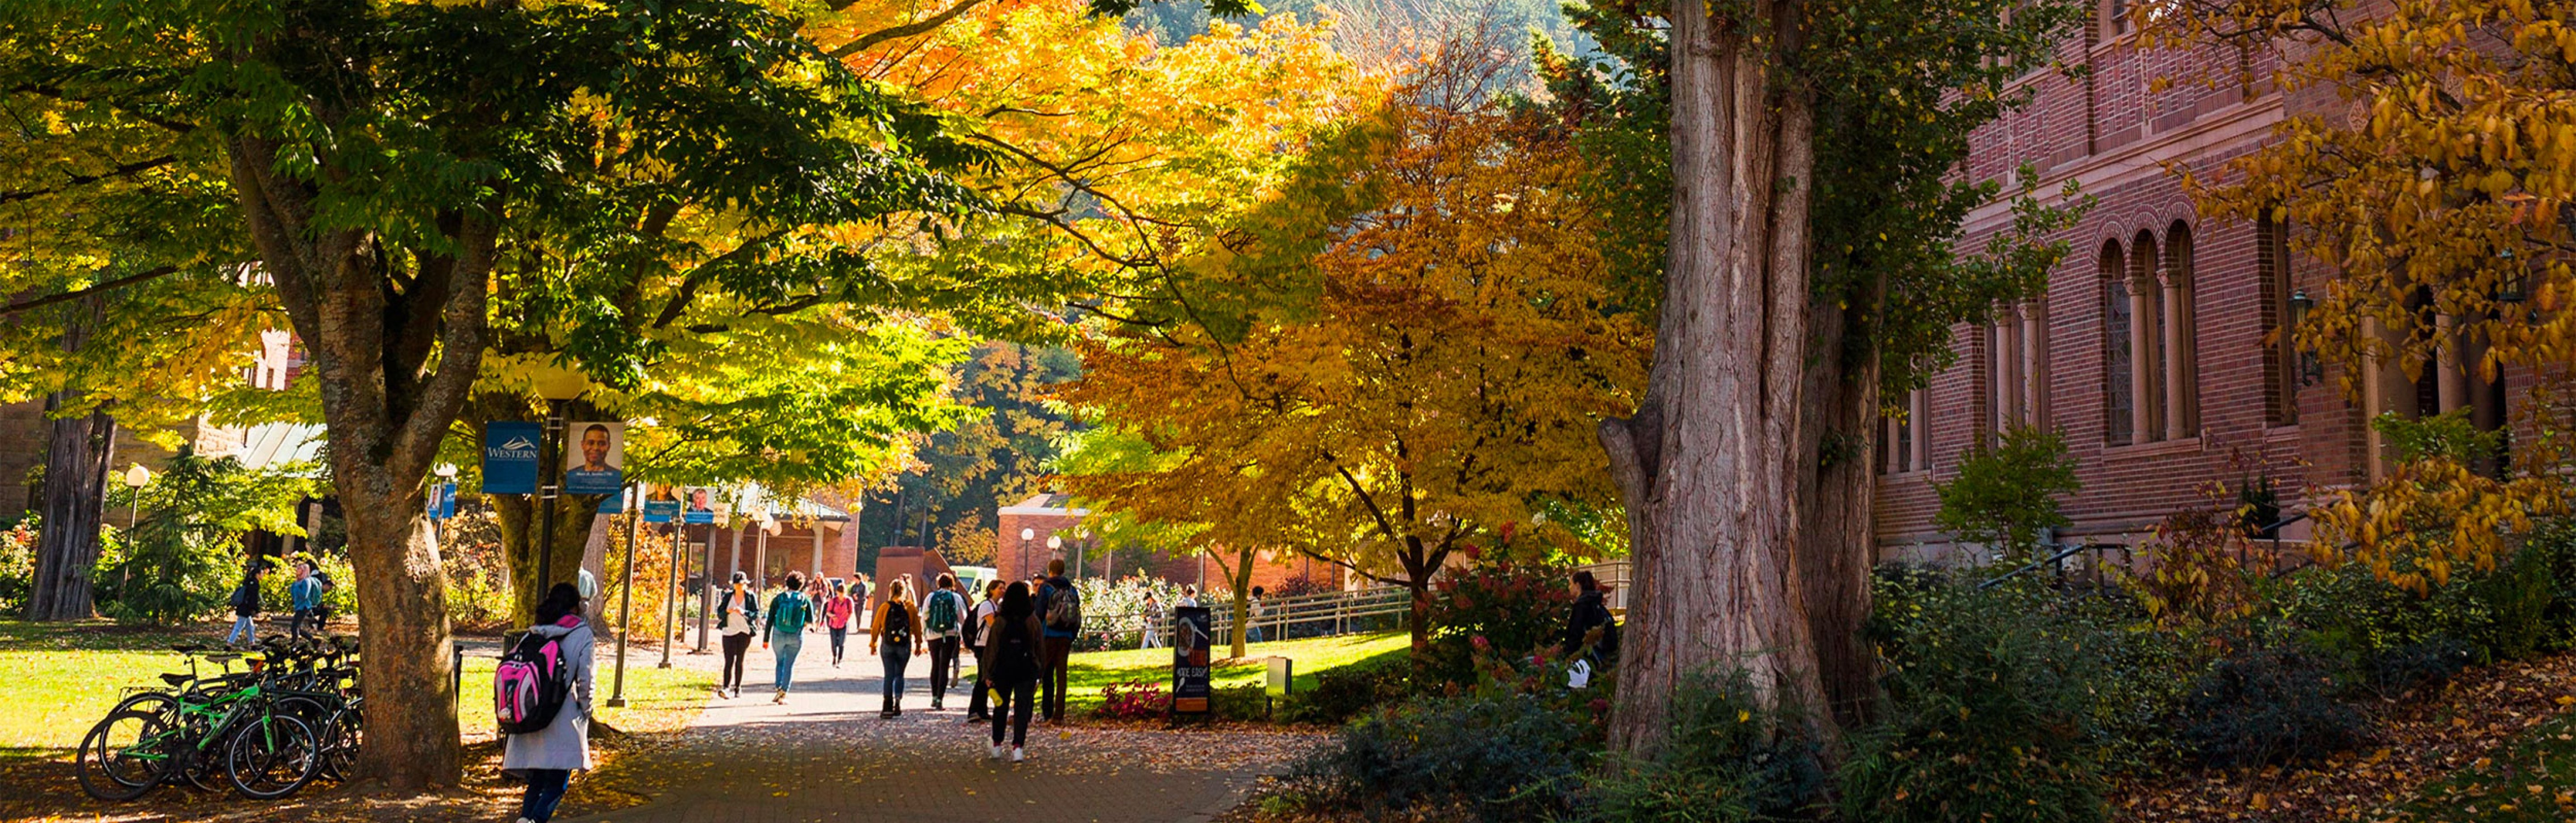 Trees leaves turning colors and students walking down the streets